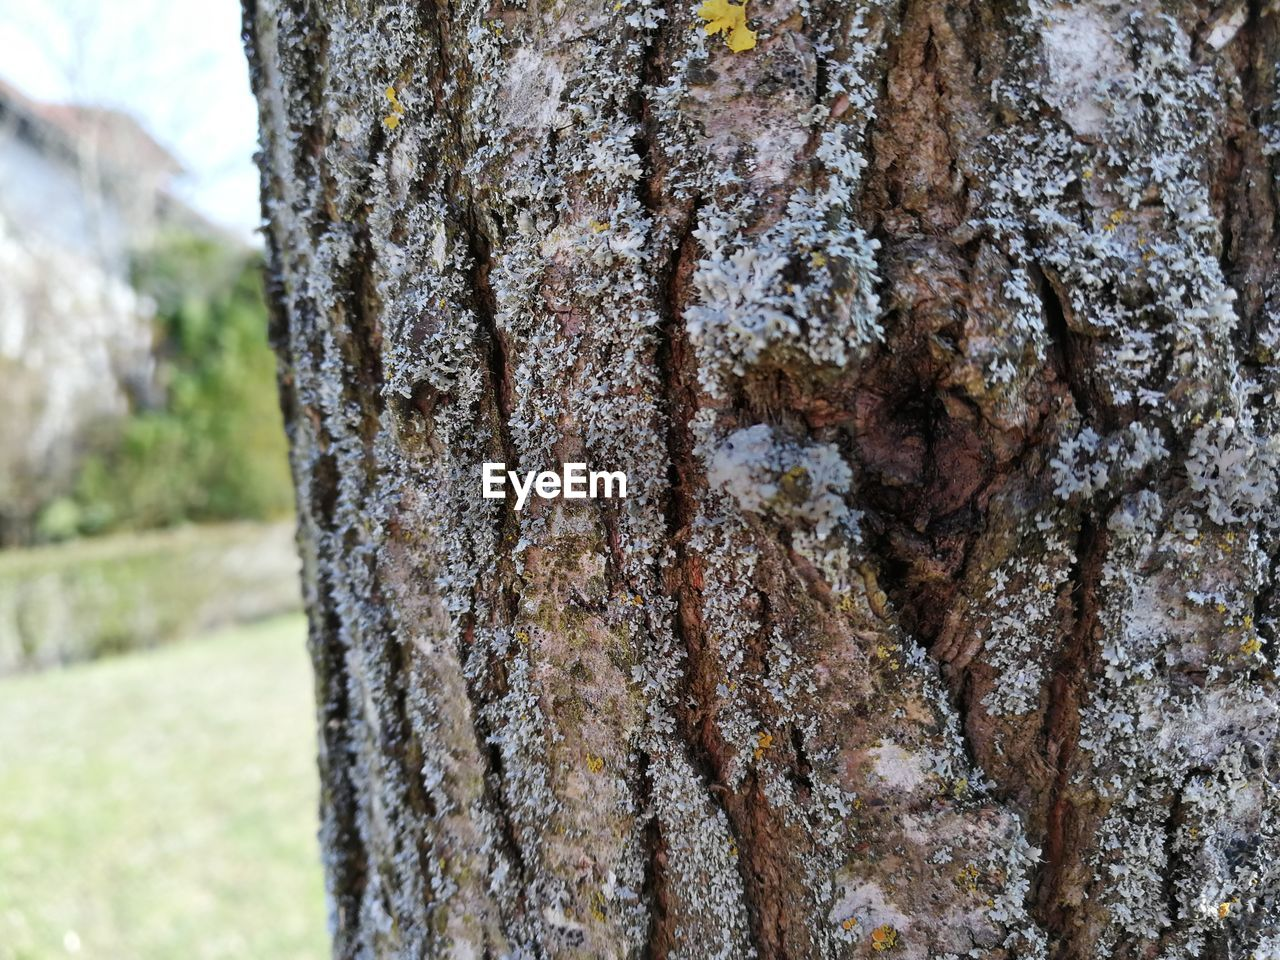 tree trunk, textured, rough, tree, day, focus on foreground, lichen, close-up, no people, nature, outdoors, bark, moss